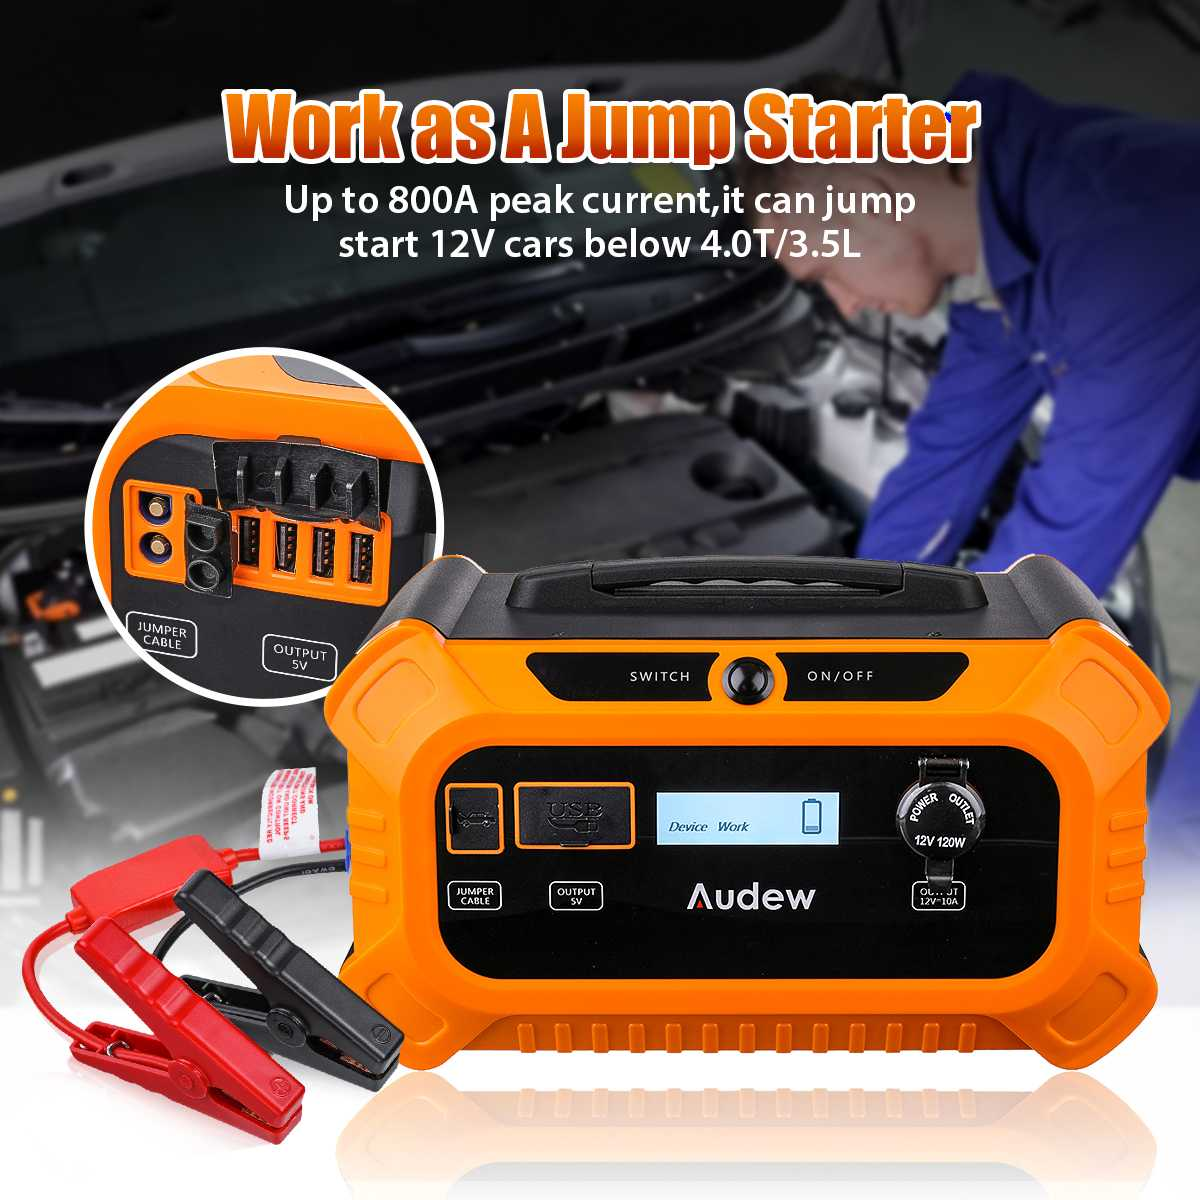 Audew Portable Solar Generator Power Supply Connector Energy Storage Power Station Voltage 12V <font><b>1000A</b></font> <font><b>Car</b></font> <font><b>Jump</b></font> <font><b>Starter</b></font> 156250mAh image